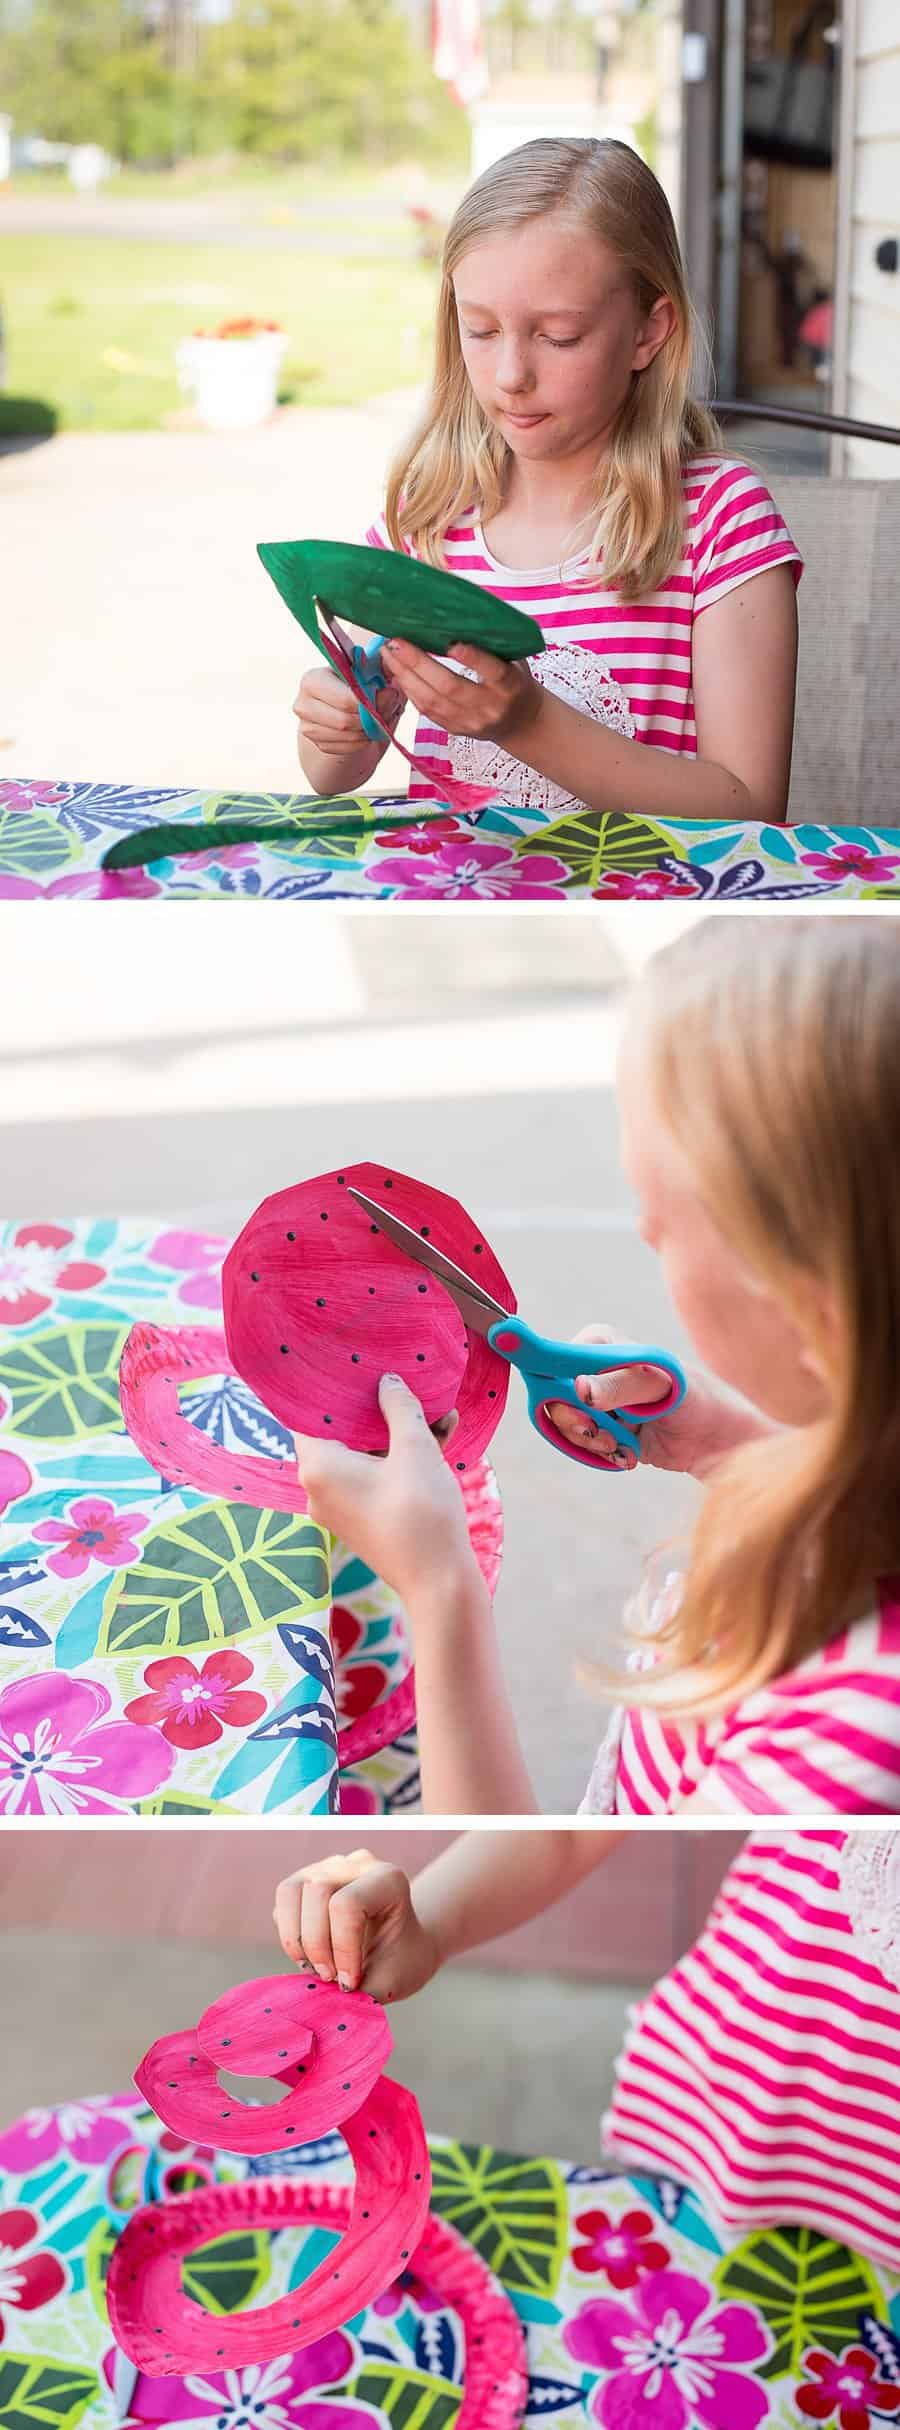 Watermelon Wind Spinner: Paper Plate Craft for Children *My kids would love this easy project. Saving this for summer break. Love the patriotic flag spinners too!